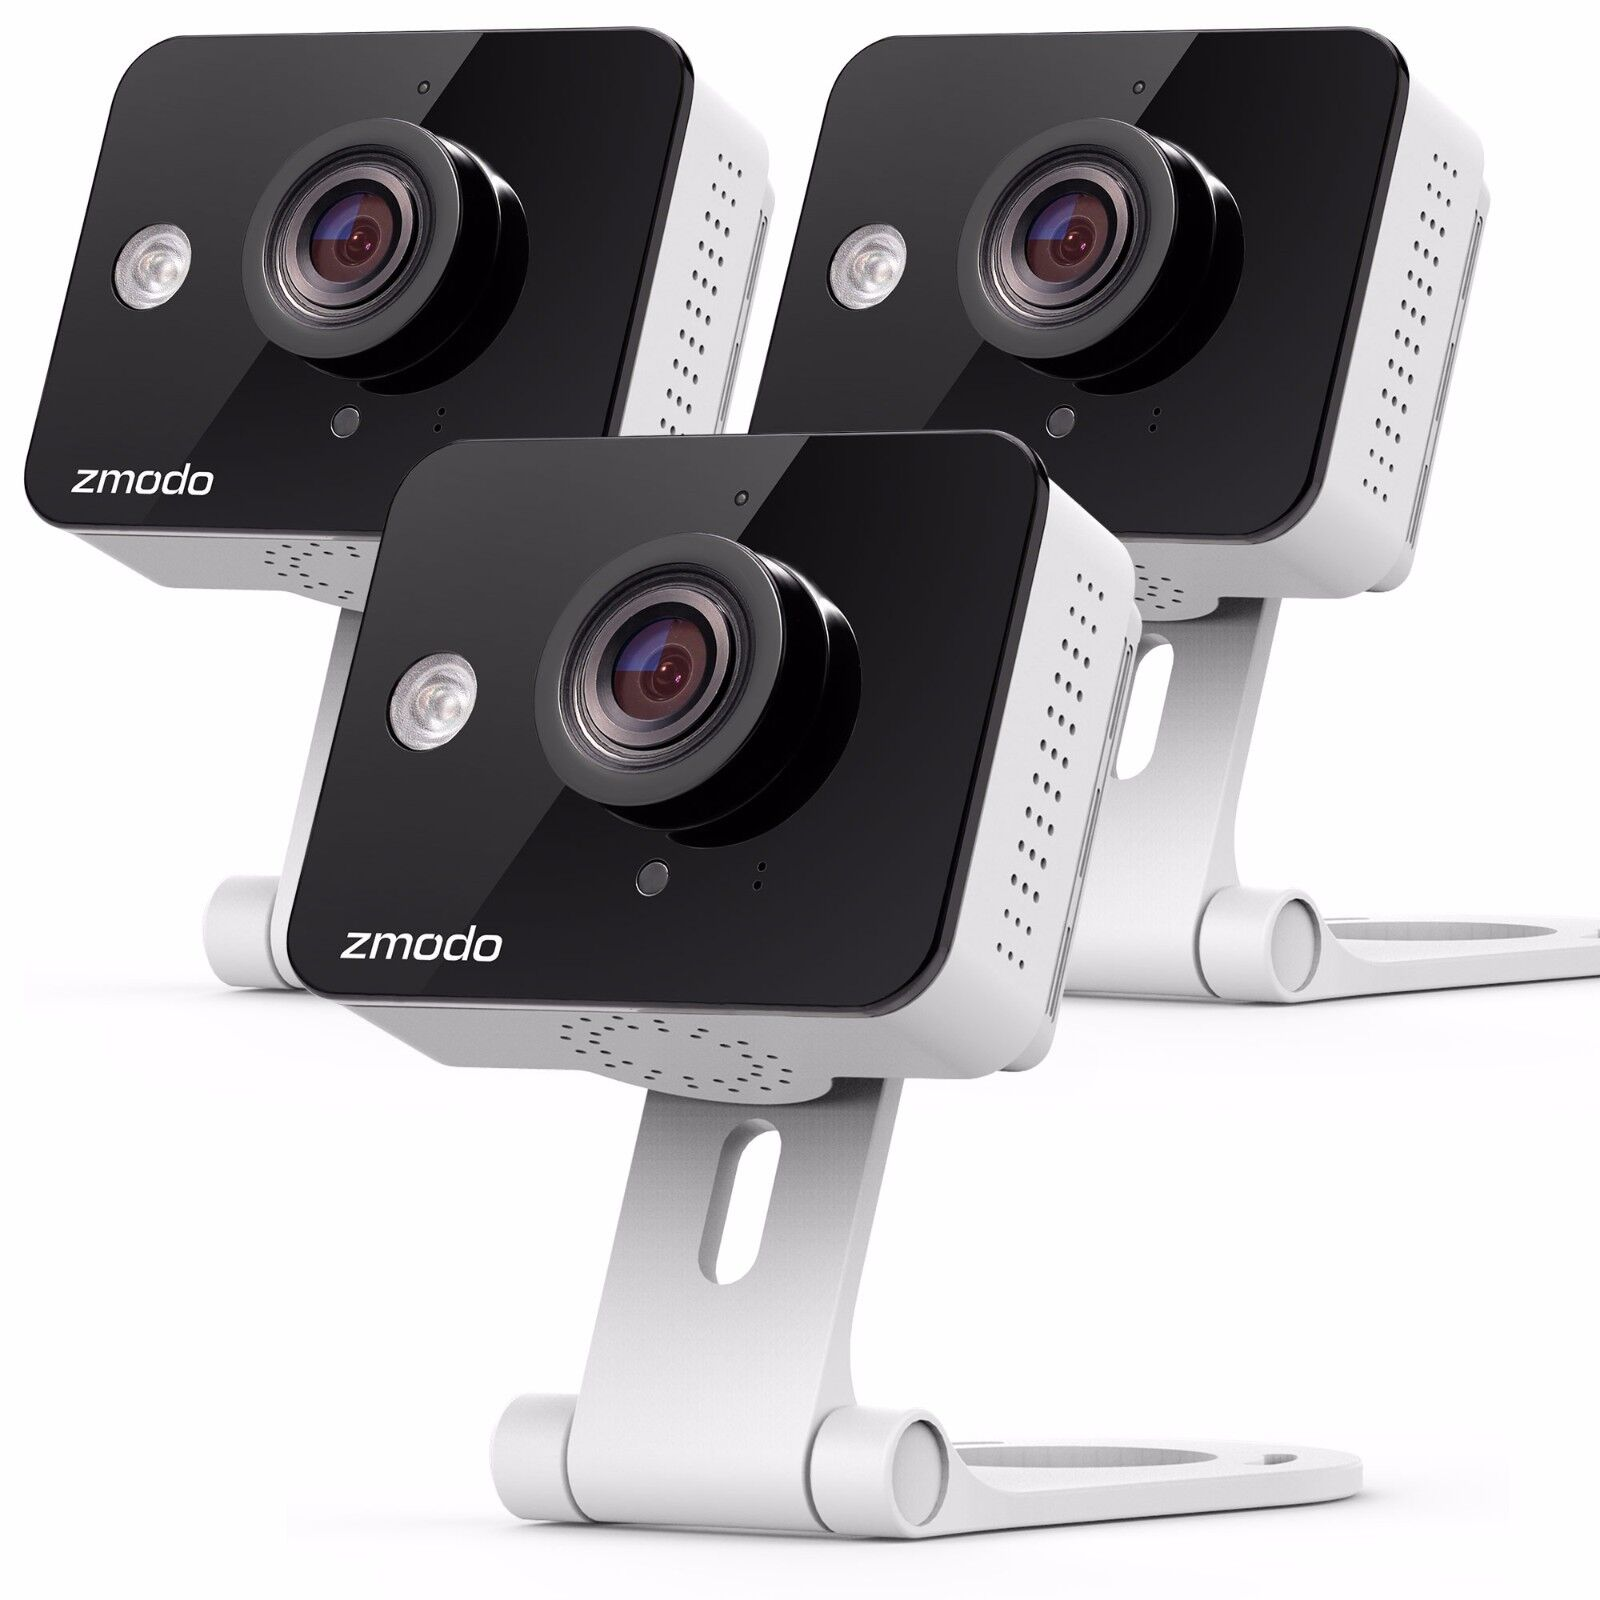 3Pack Zmodo 720p IP Indoor Two-Way Audio WiFi Security Camer